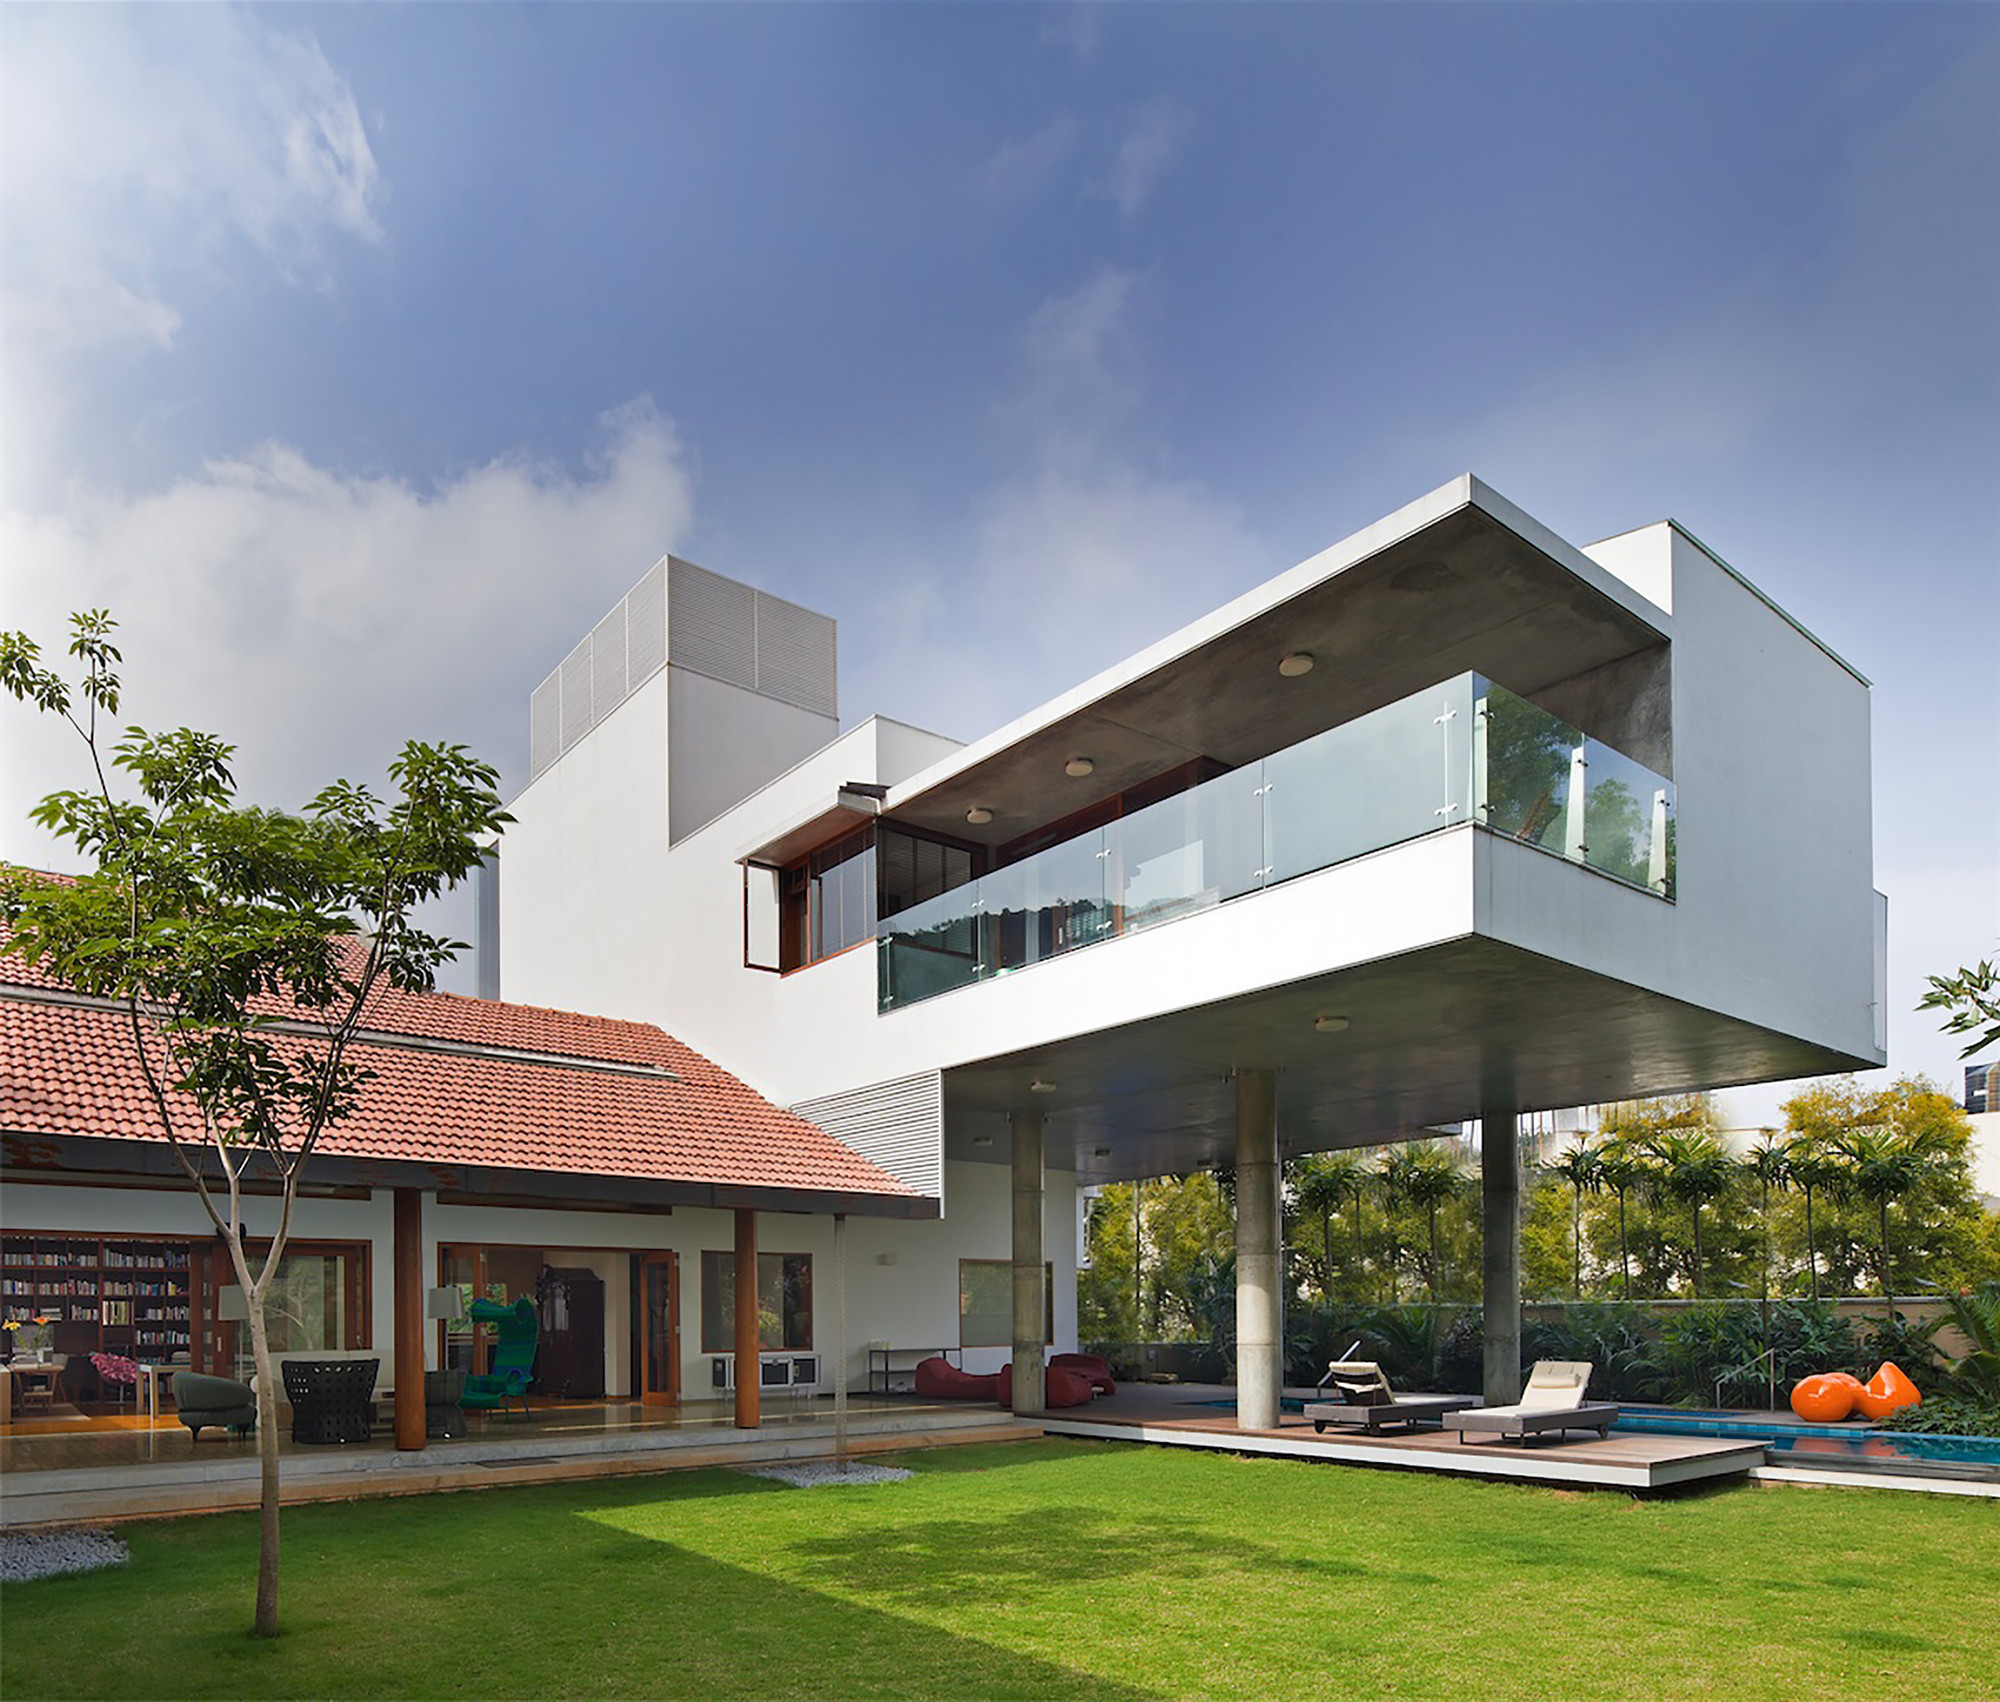 Modern Indian Architecture Google Search: The Library House / Khosla Associates